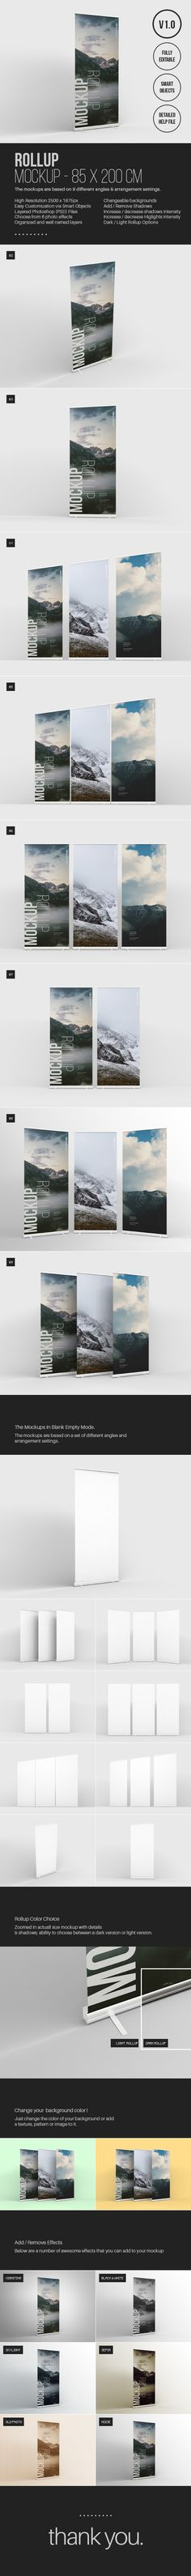 Free Roll-up Mockup on Behance